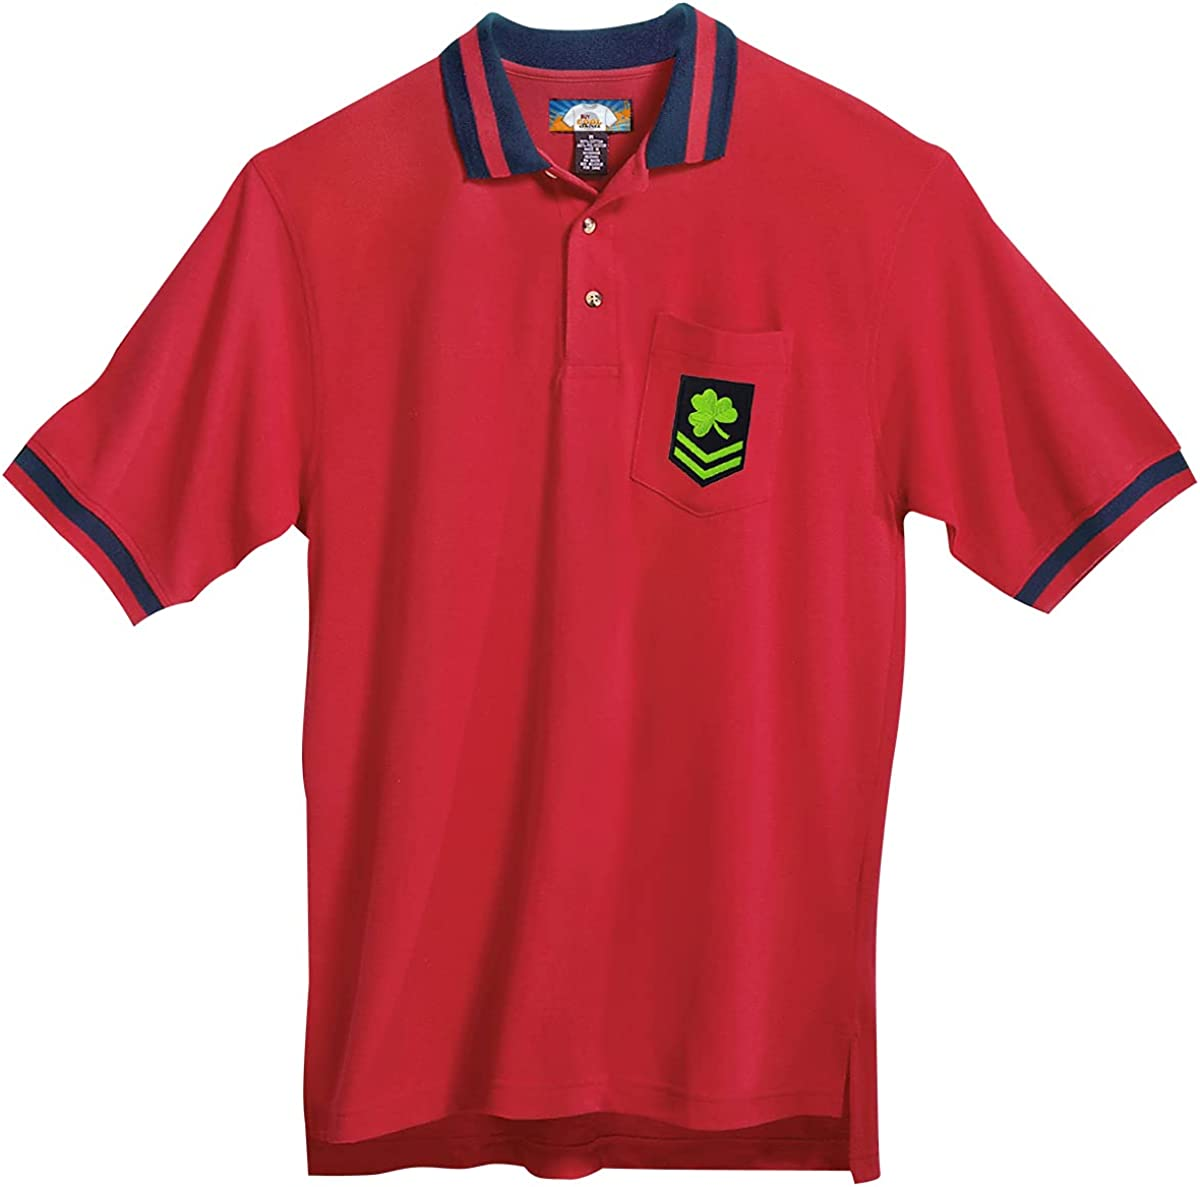 Buy Cool Shirts Irish Military Patch Polo Shirt with Pocket - Regular, Big and Tall Sizes